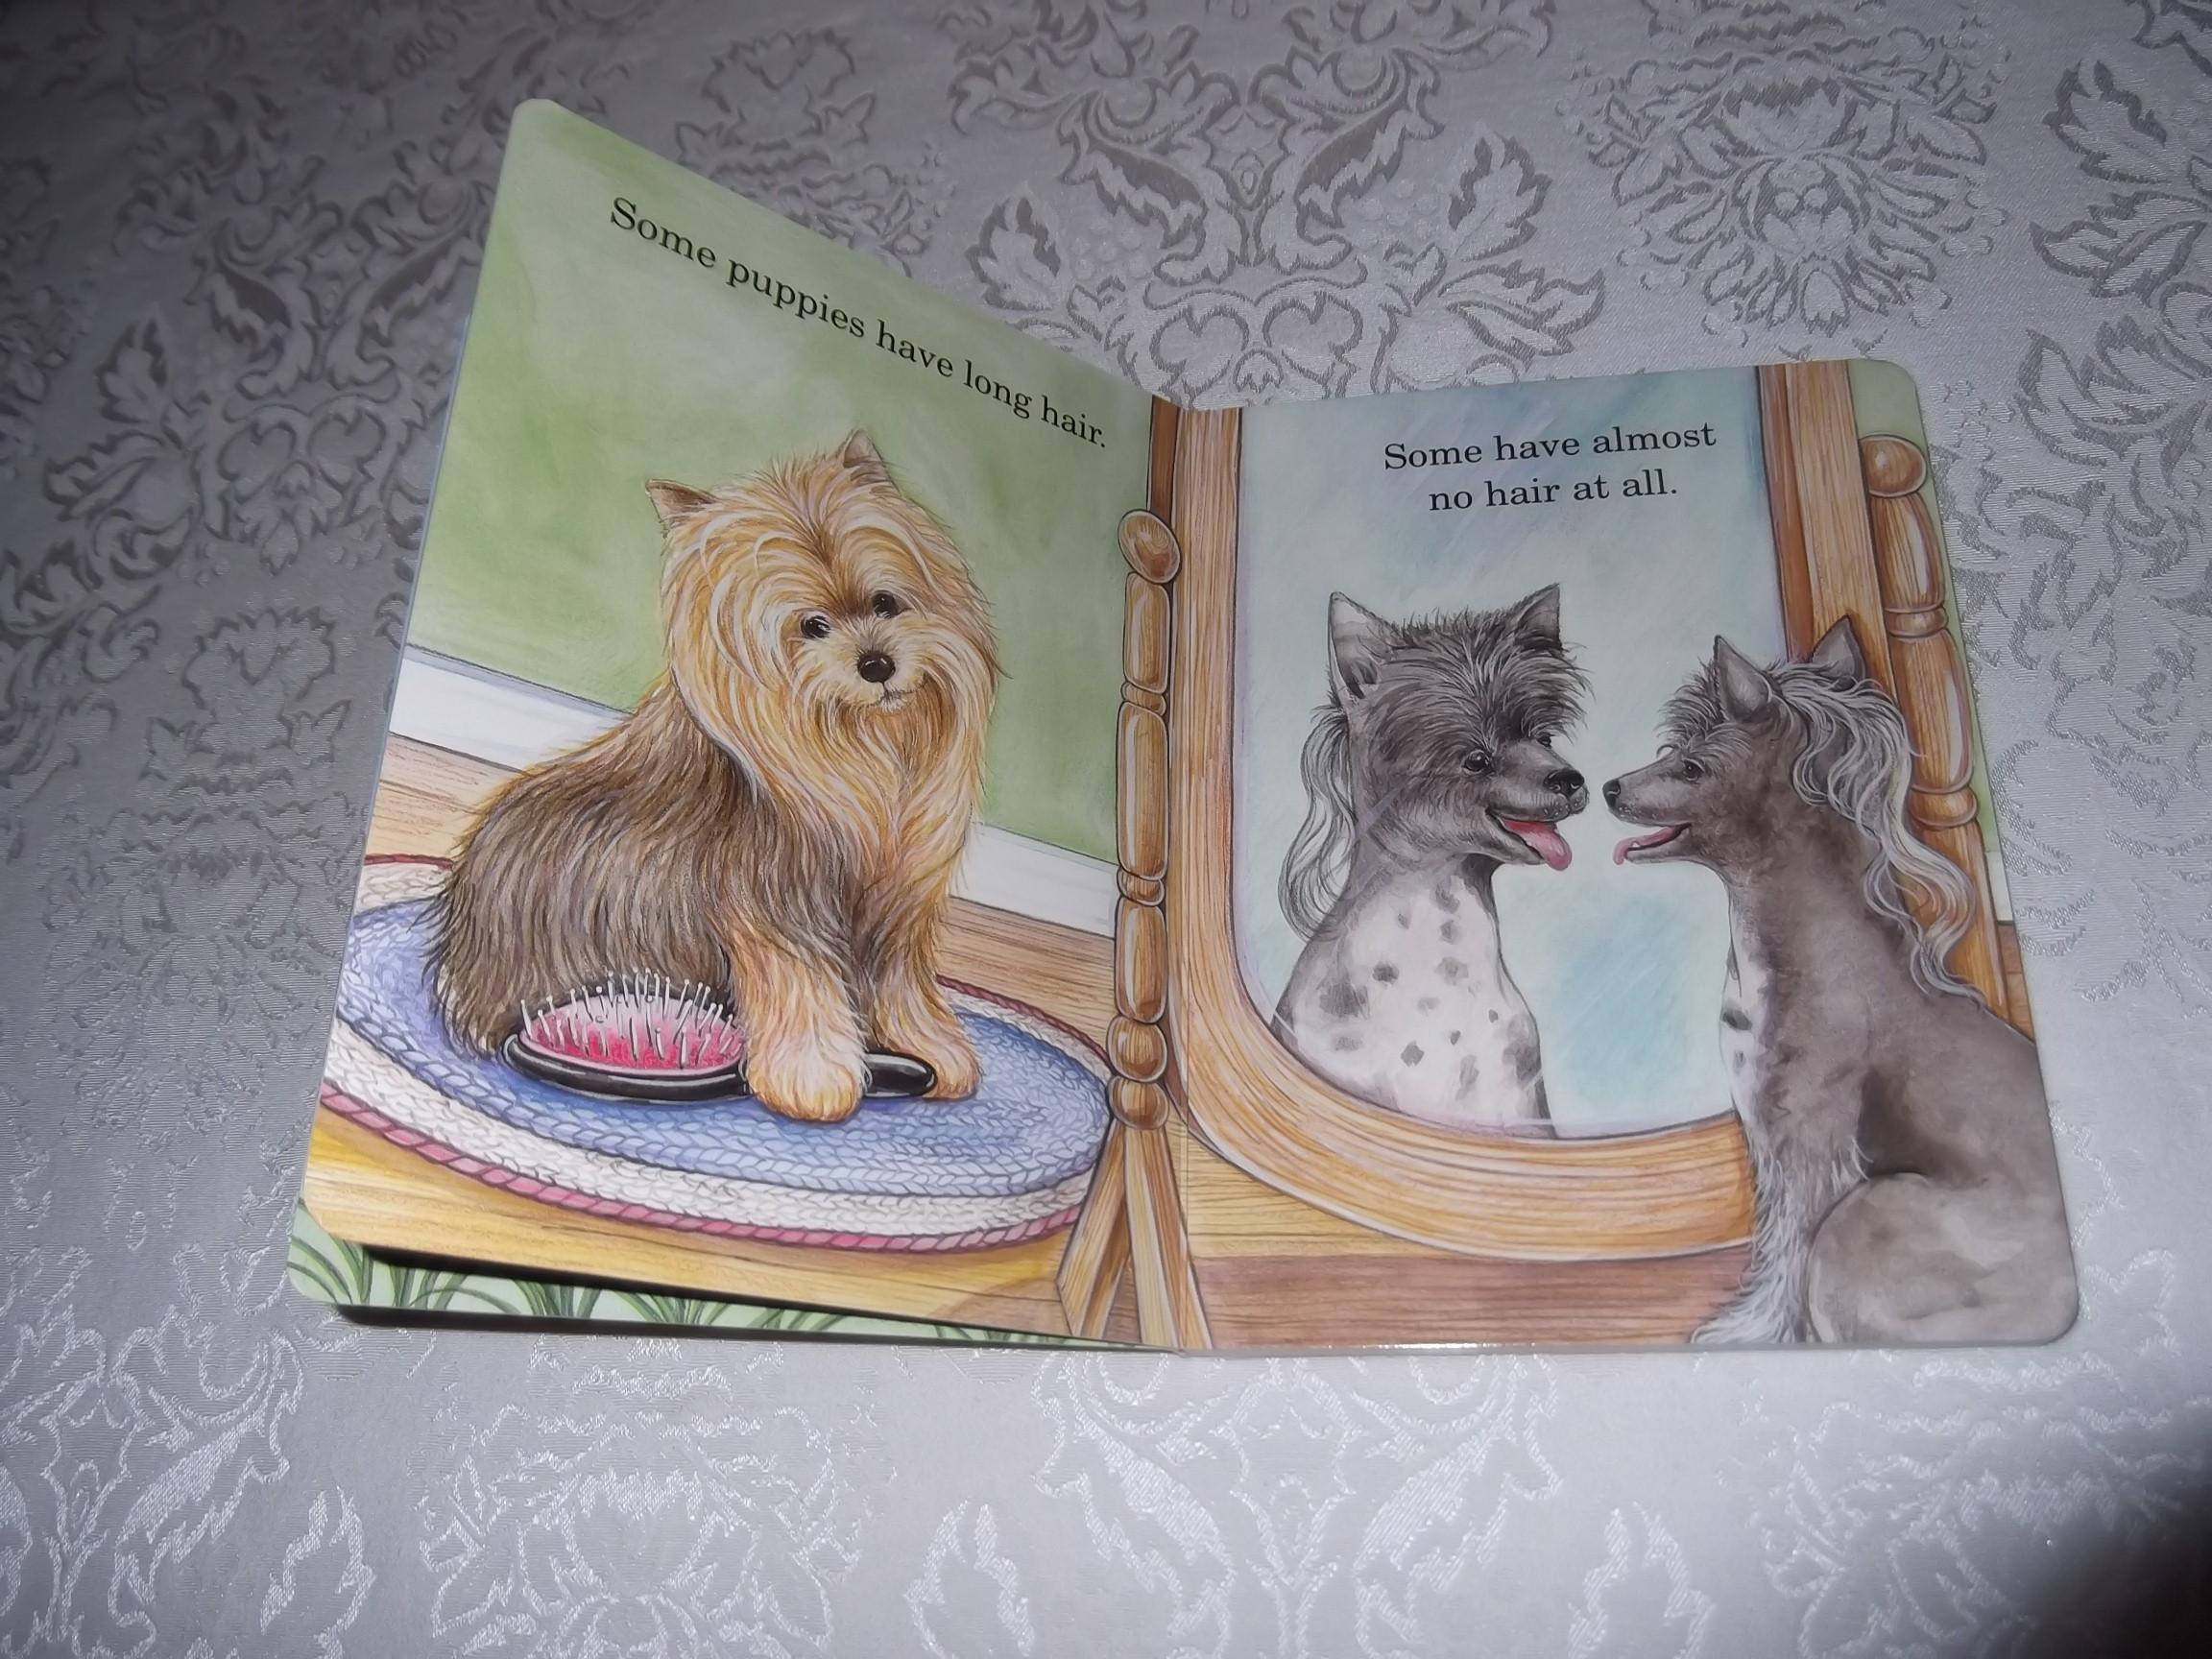 Image 2 of God Made Puppies Marian Bennet Happy Day Brand New Board Book